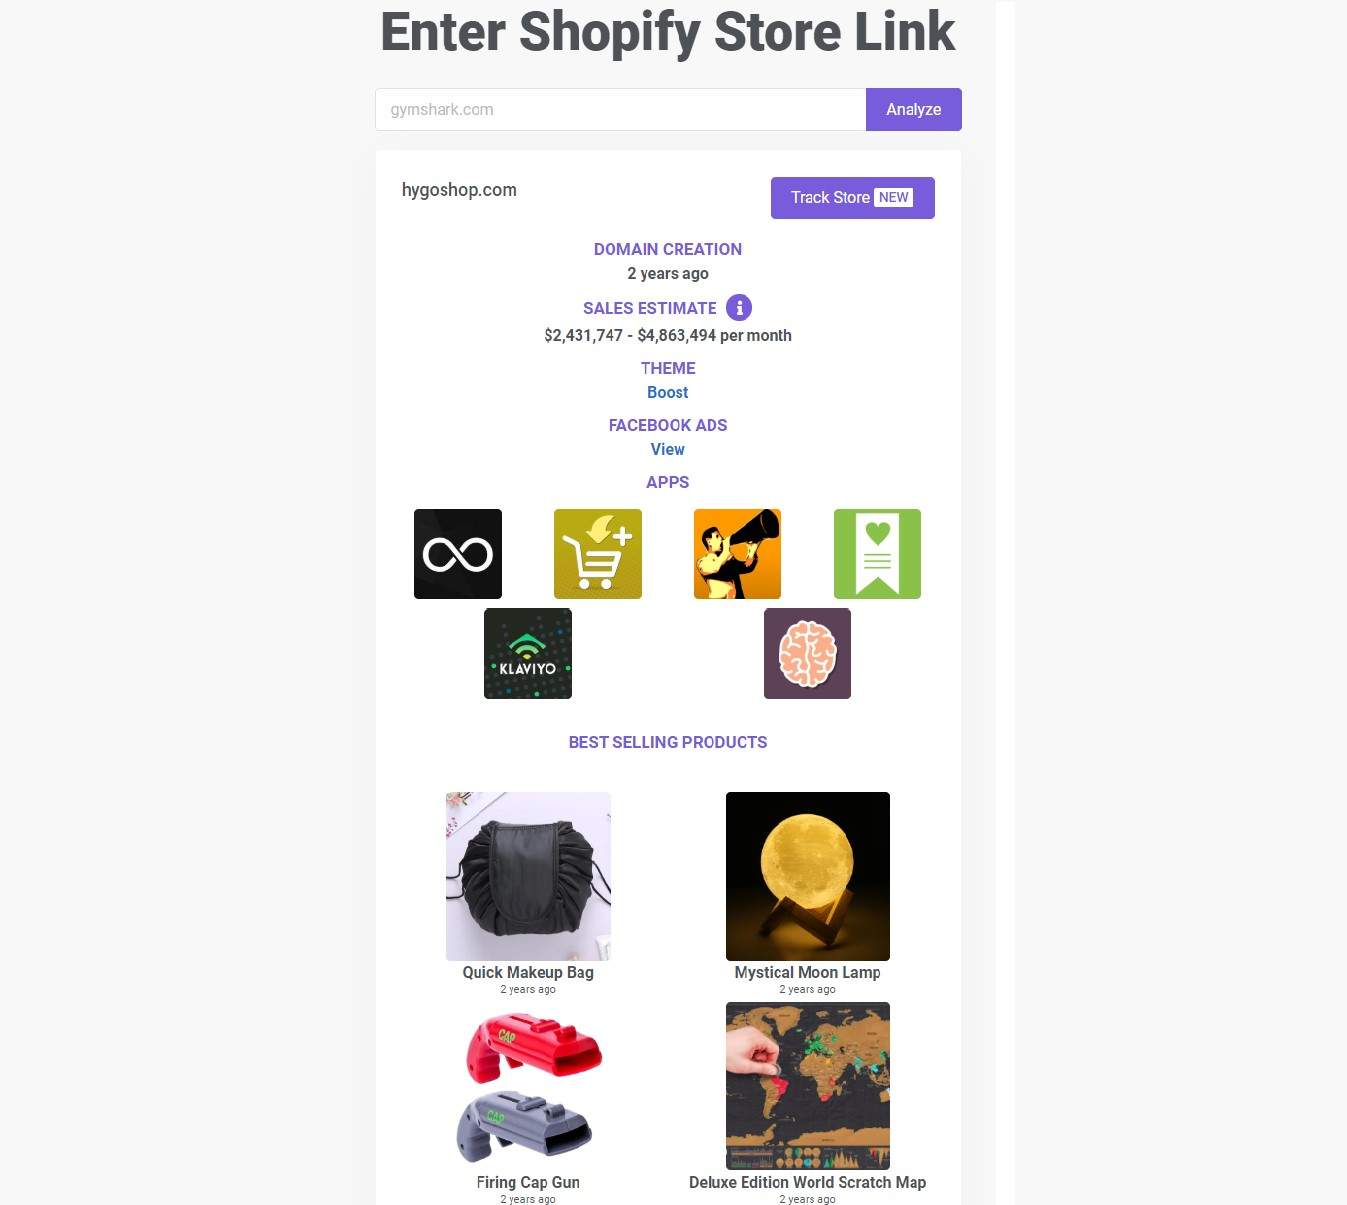 salesource shopify store analysis